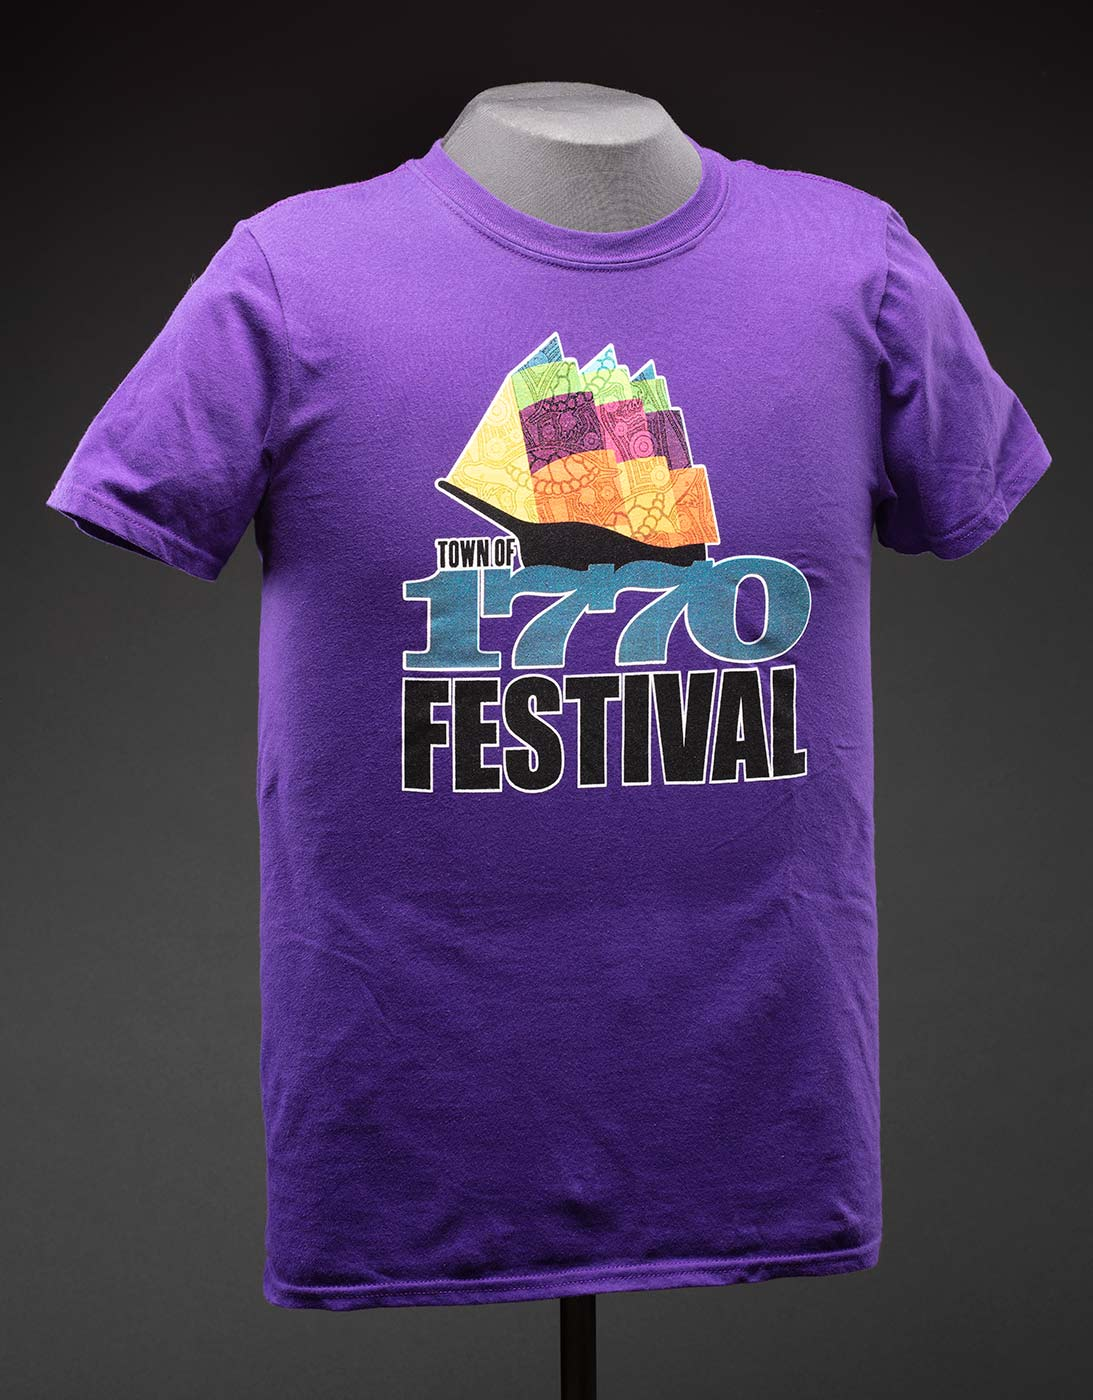 A purple T-shirt with a logo on the front that features a colourful, abstract design of a sailing ship with an indigenous design. Below the illustration is text that reads 'TOWN OF / 1770 / FESTIVAL'.